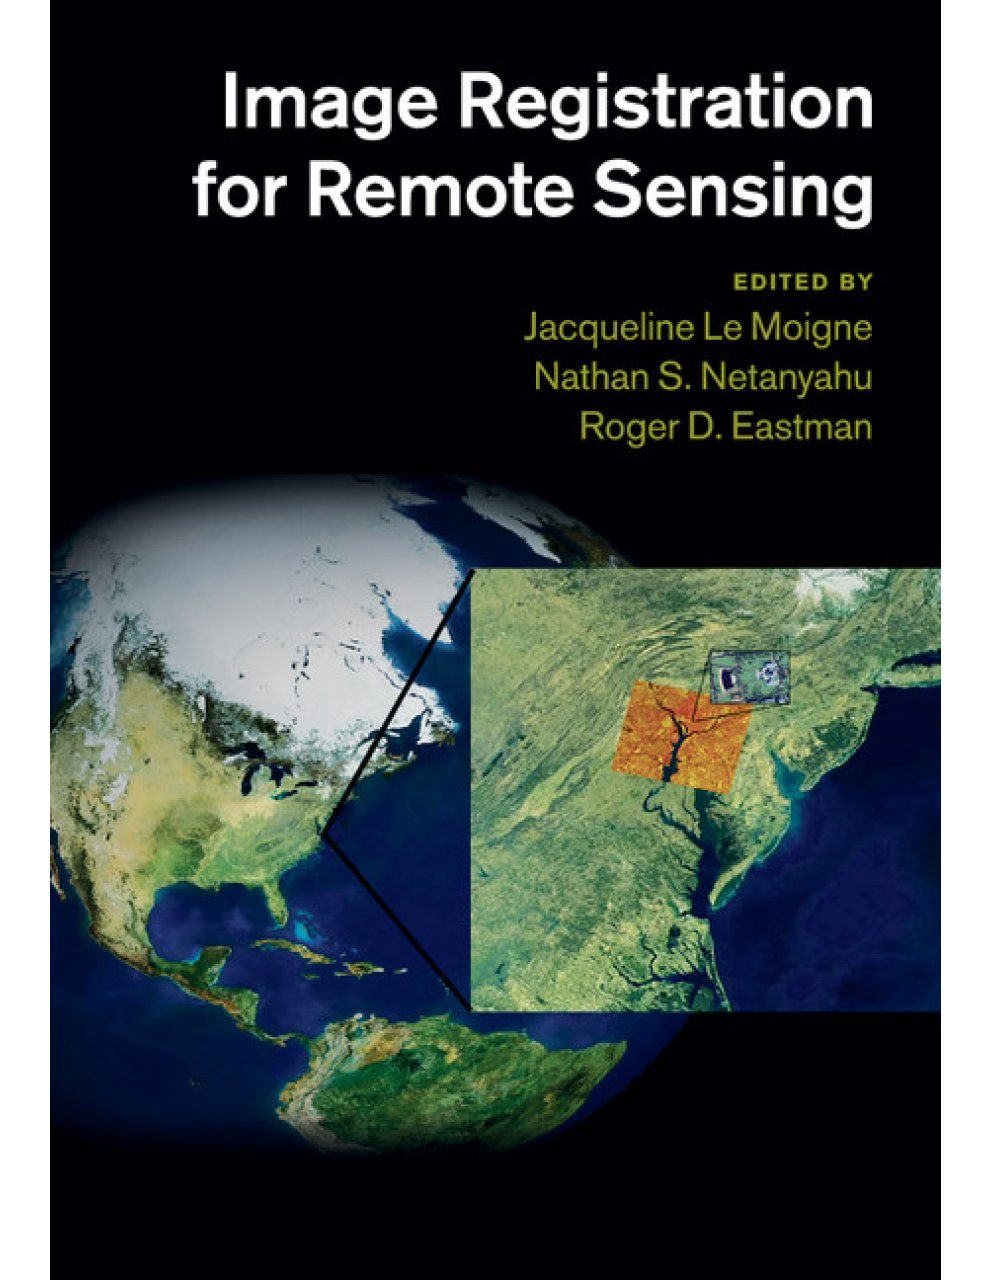 Image Registration for Remote Sensing